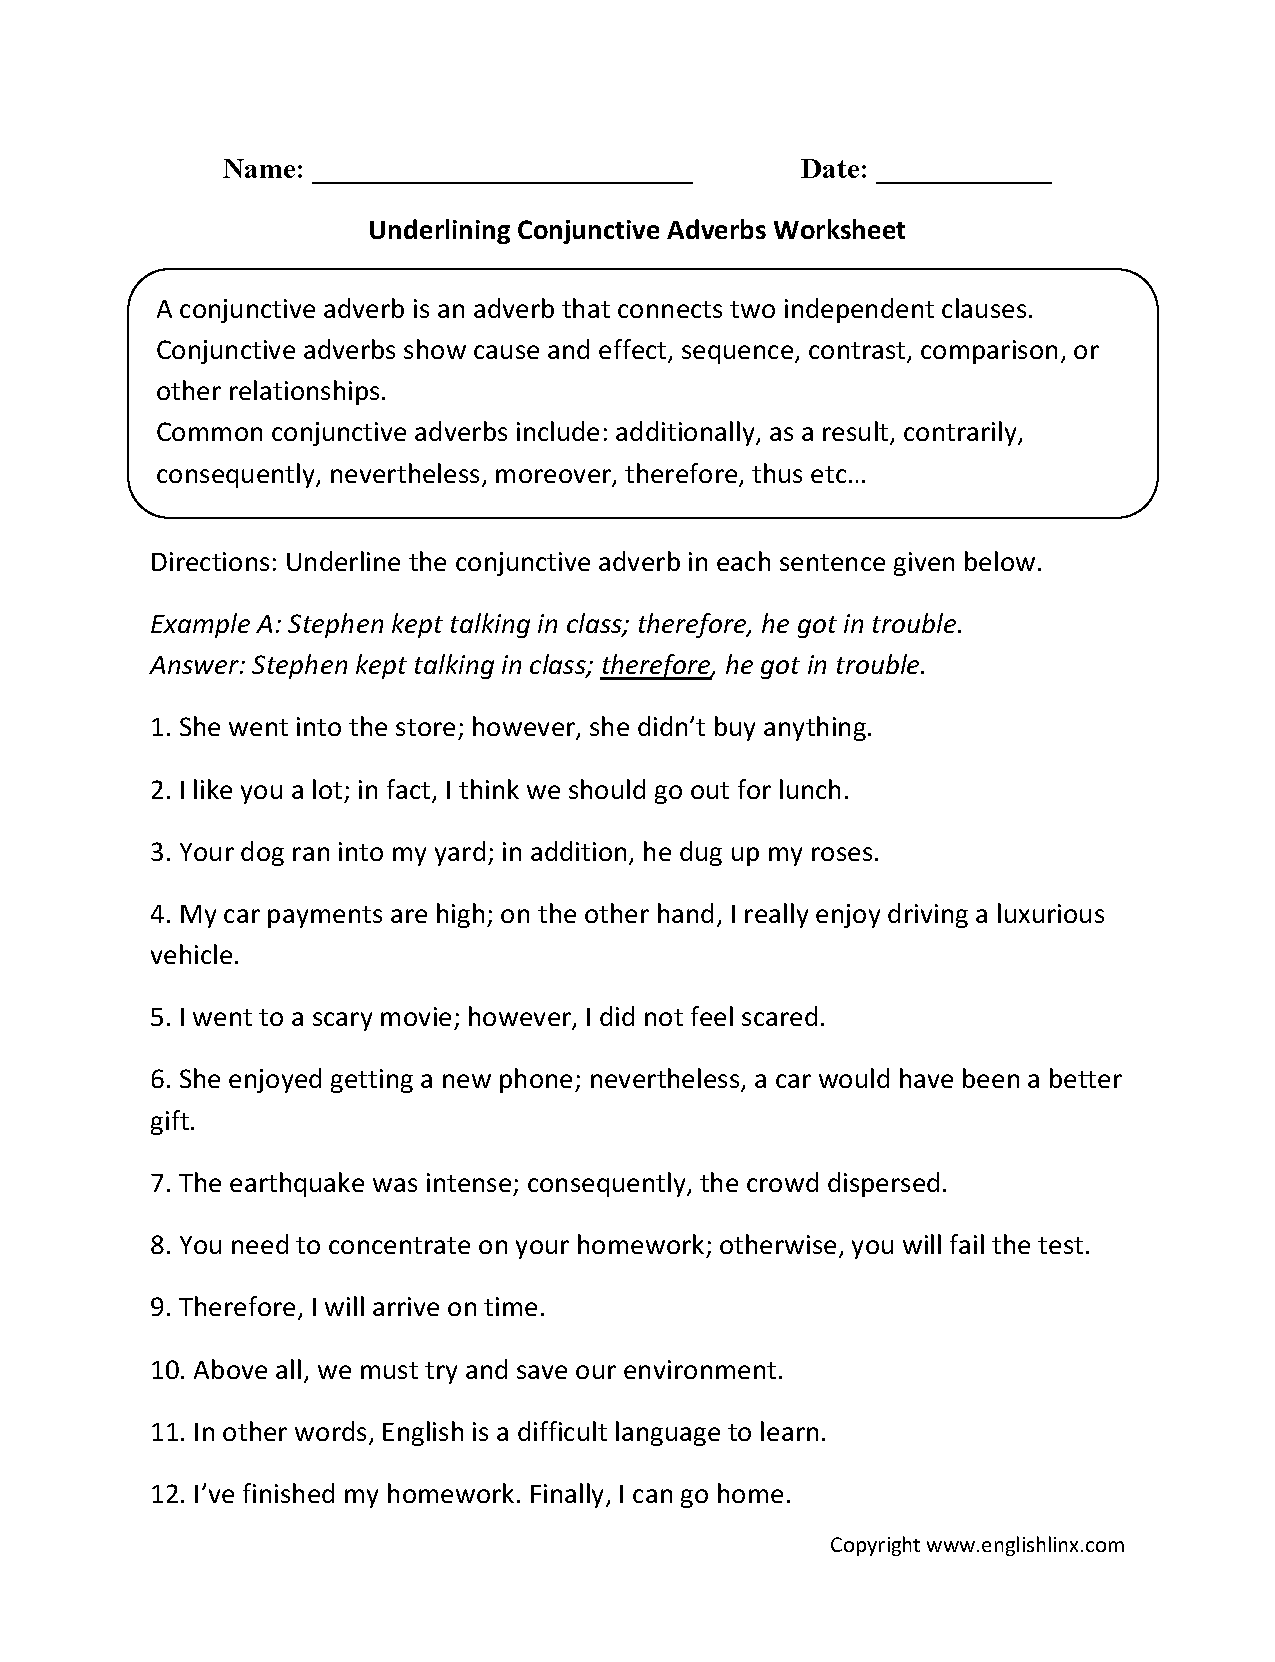 Weirdmailus  Personable Englishlinxcom  Conjunctions Worksheets With Outstanding Worksheet With Agreeable Adding And Subtracting Fractions With Like Denominators Worksheets Also Plant Parts Worksheet In Addition Worksheets Theteacherscorner Net And Puzzle Worksheets As Well As Acceleration Calculations Worksheet Additionally Continents Worksheet From Englishlinxcom With Weirdmailus  Outstanding Englishlinxcom  Conjunctions Worksheets With Agreeable Worksheet And Personable Adding And Subtracting Fractions With Like Denominators Worksheets Also Plant Parts Worksheet In Addition Worksheets Theteacherscorner Net From Englishlinxcom